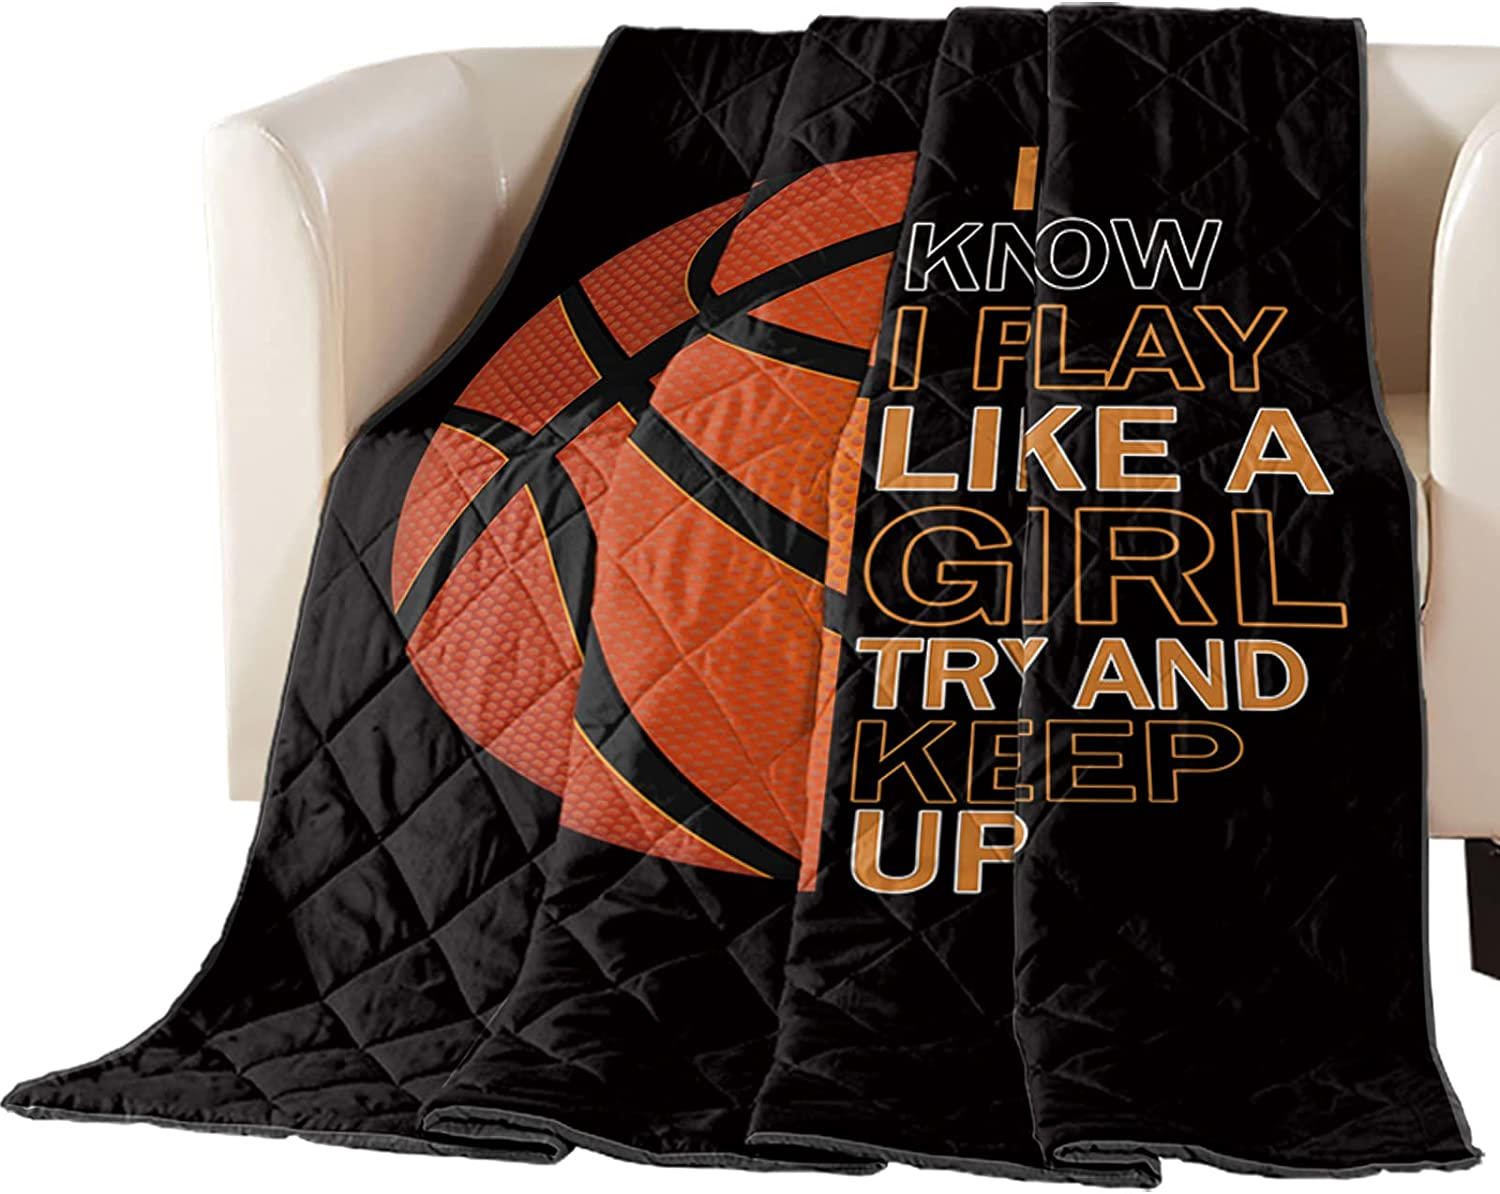 DecorLovee Bedding Ranking Year-end annual account TOP11 Duvets Basketball Sport Word with Black and